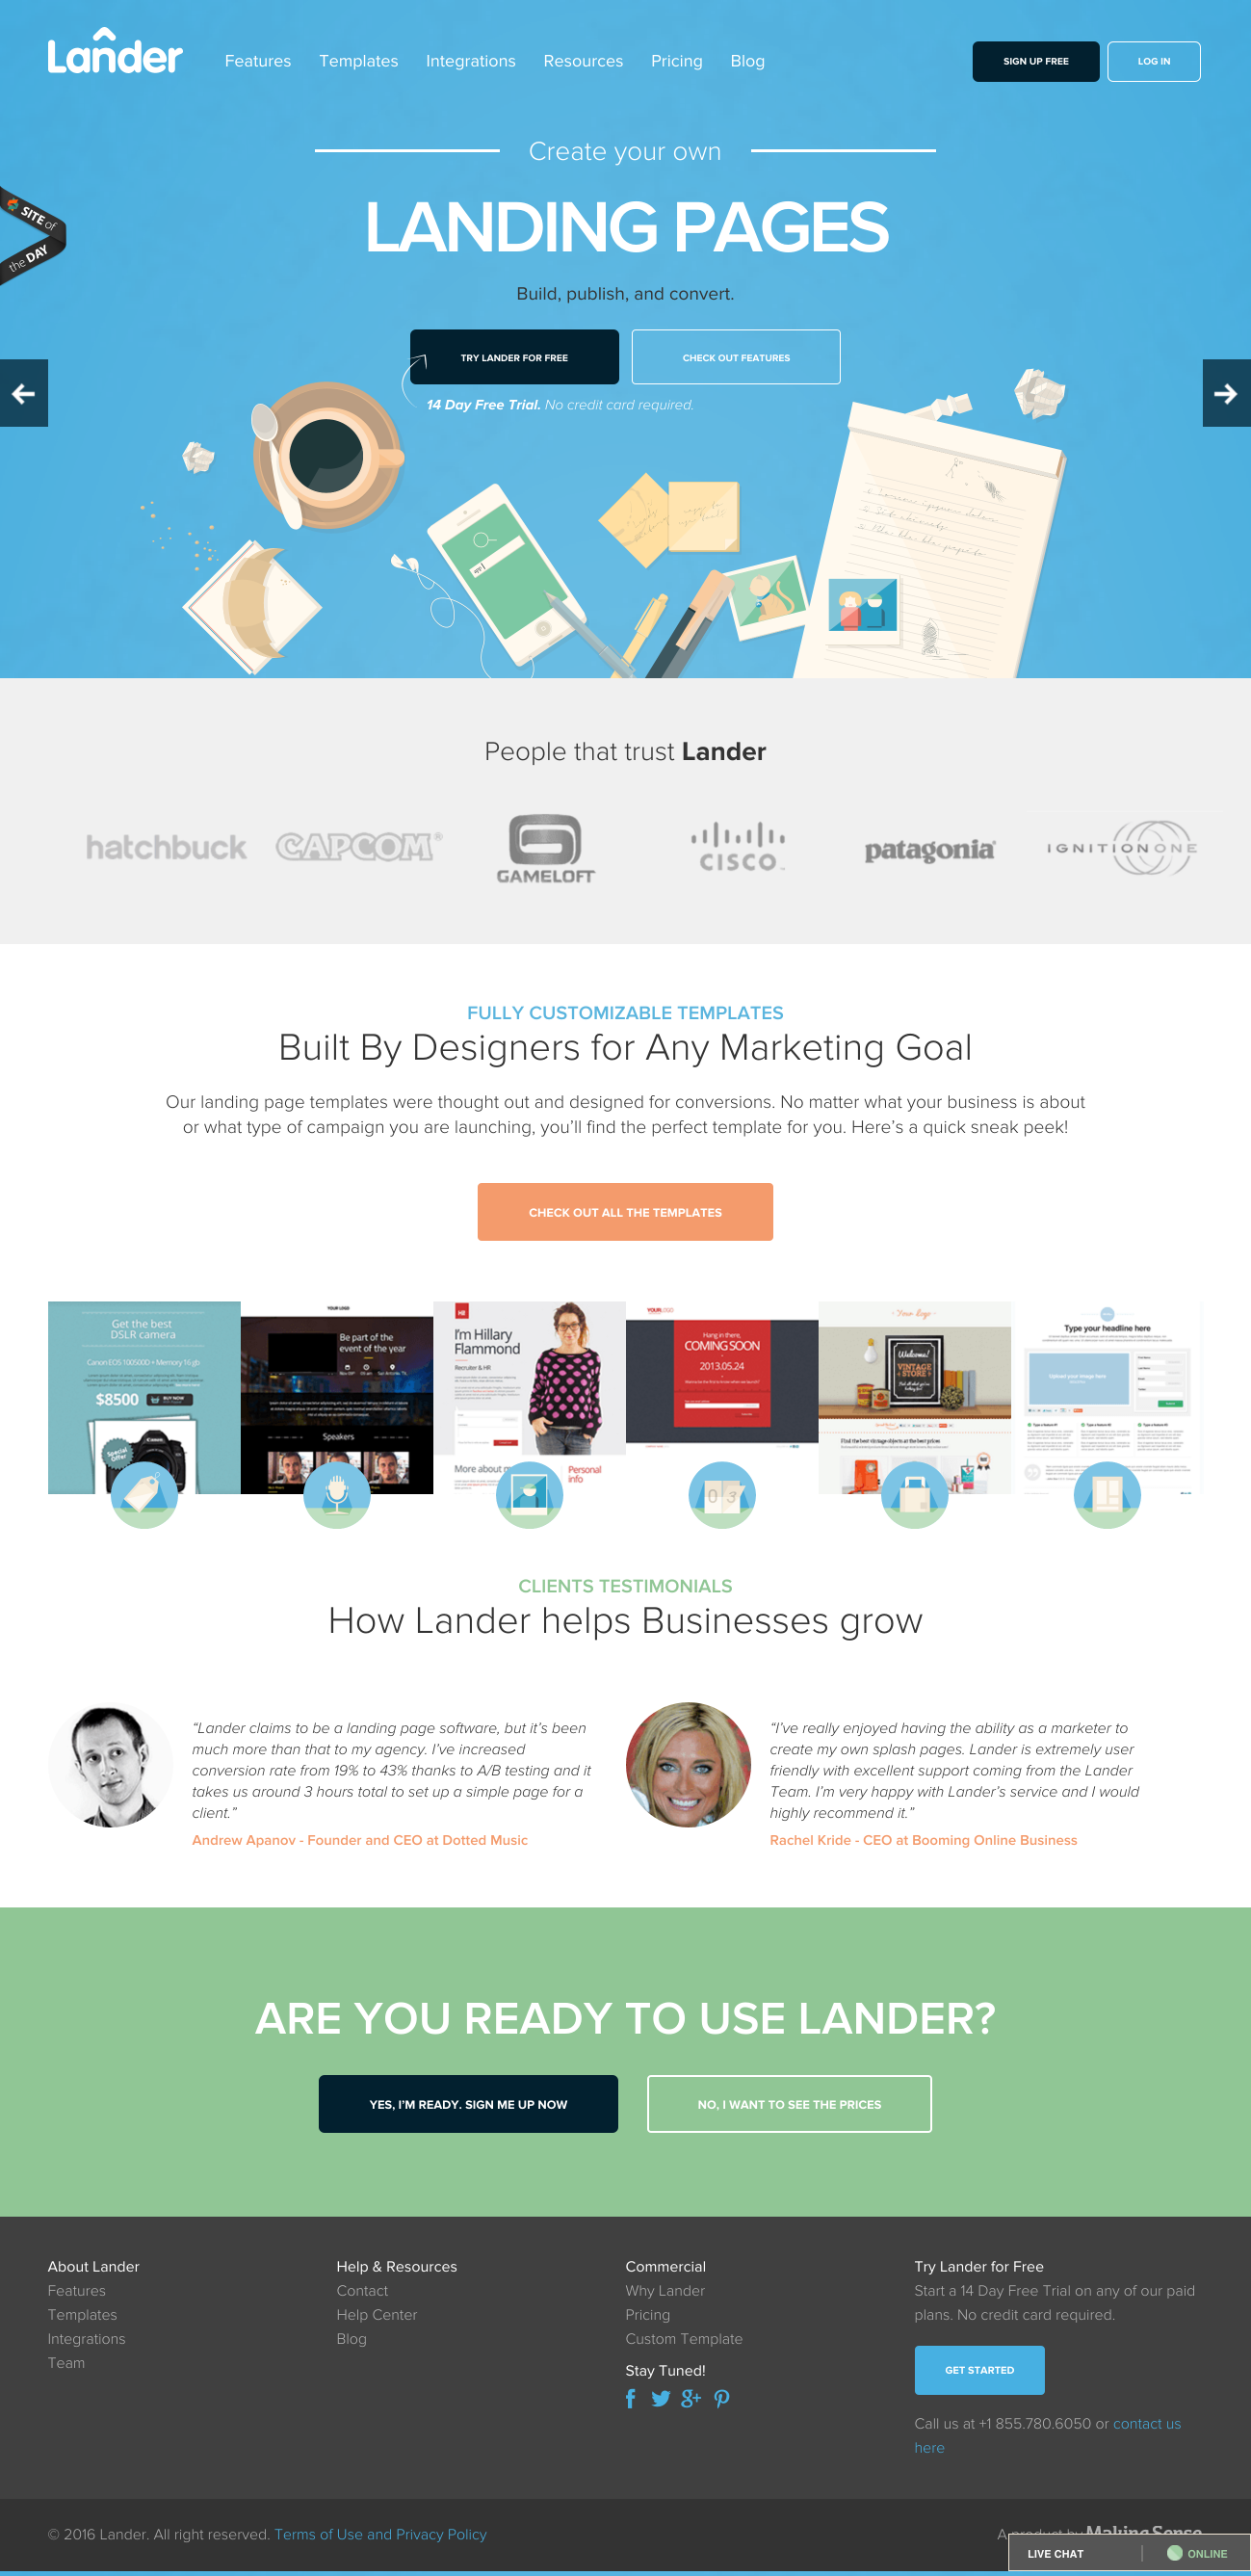 Marketing Jobs Pages on Joomla | Website Inspiration and